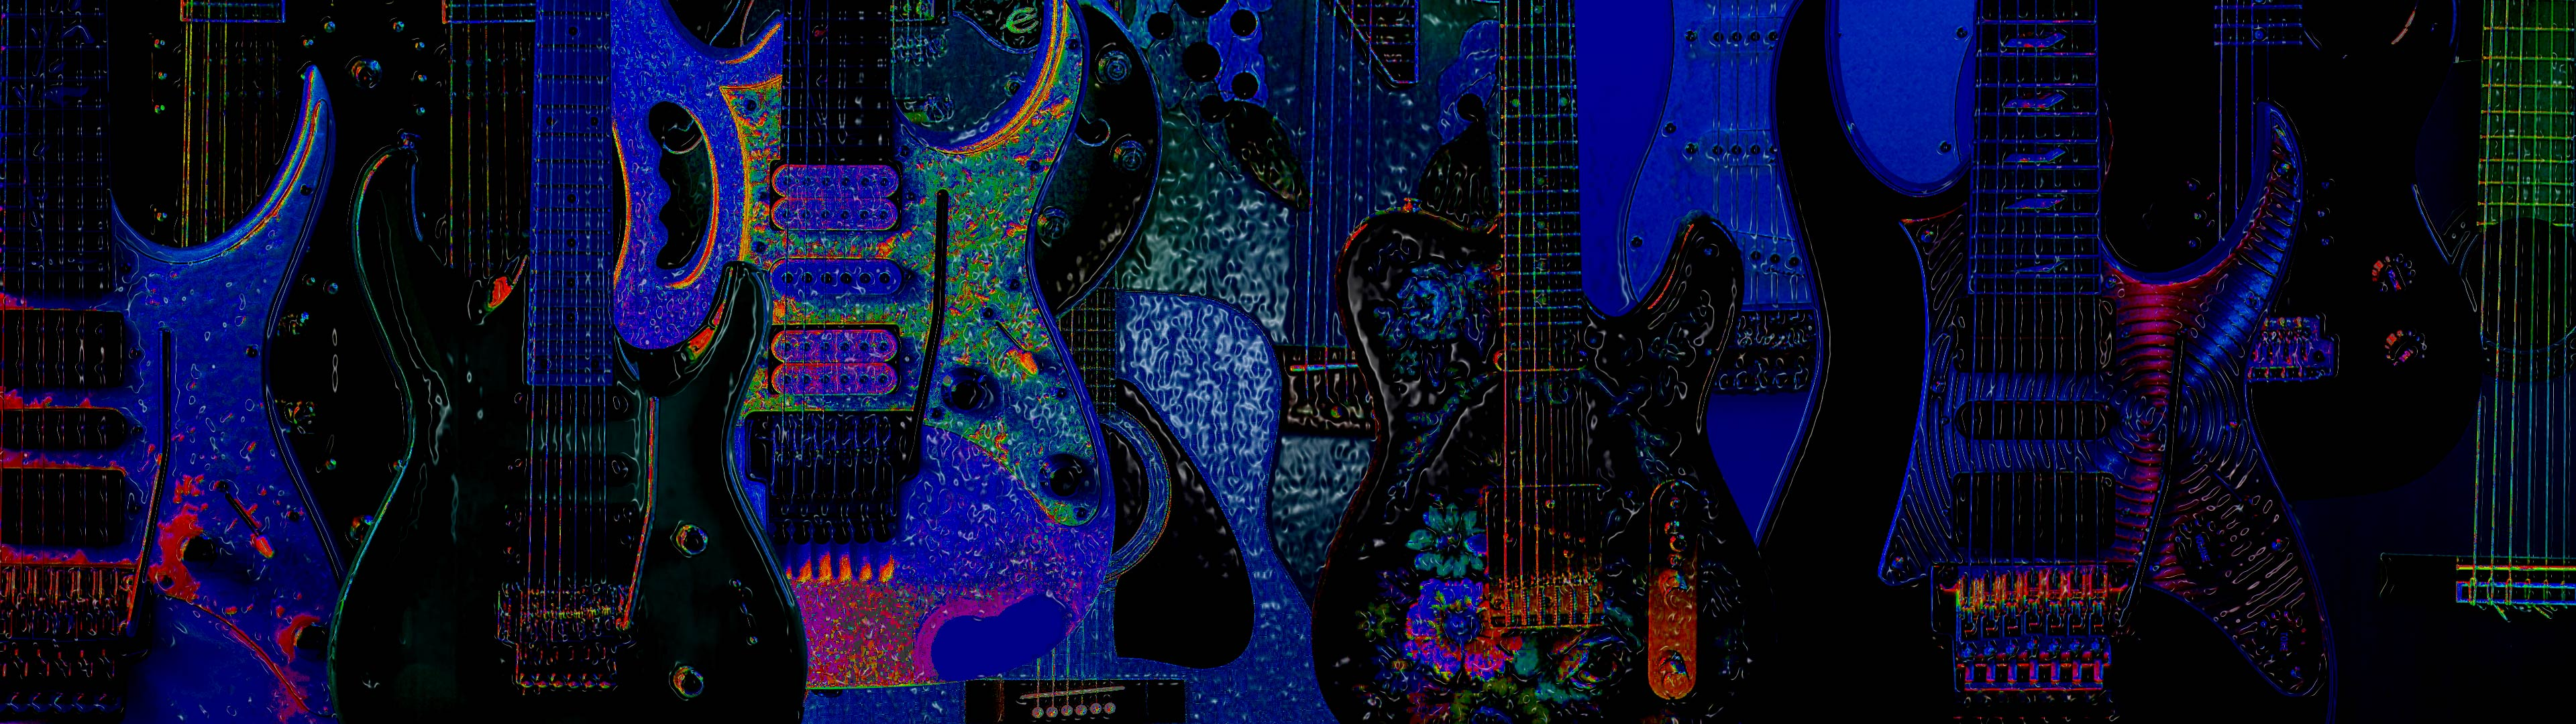 Wonderful Wallpaper Music Dual Monitor - guitars-double-wide-1  Pic_31786.jpg